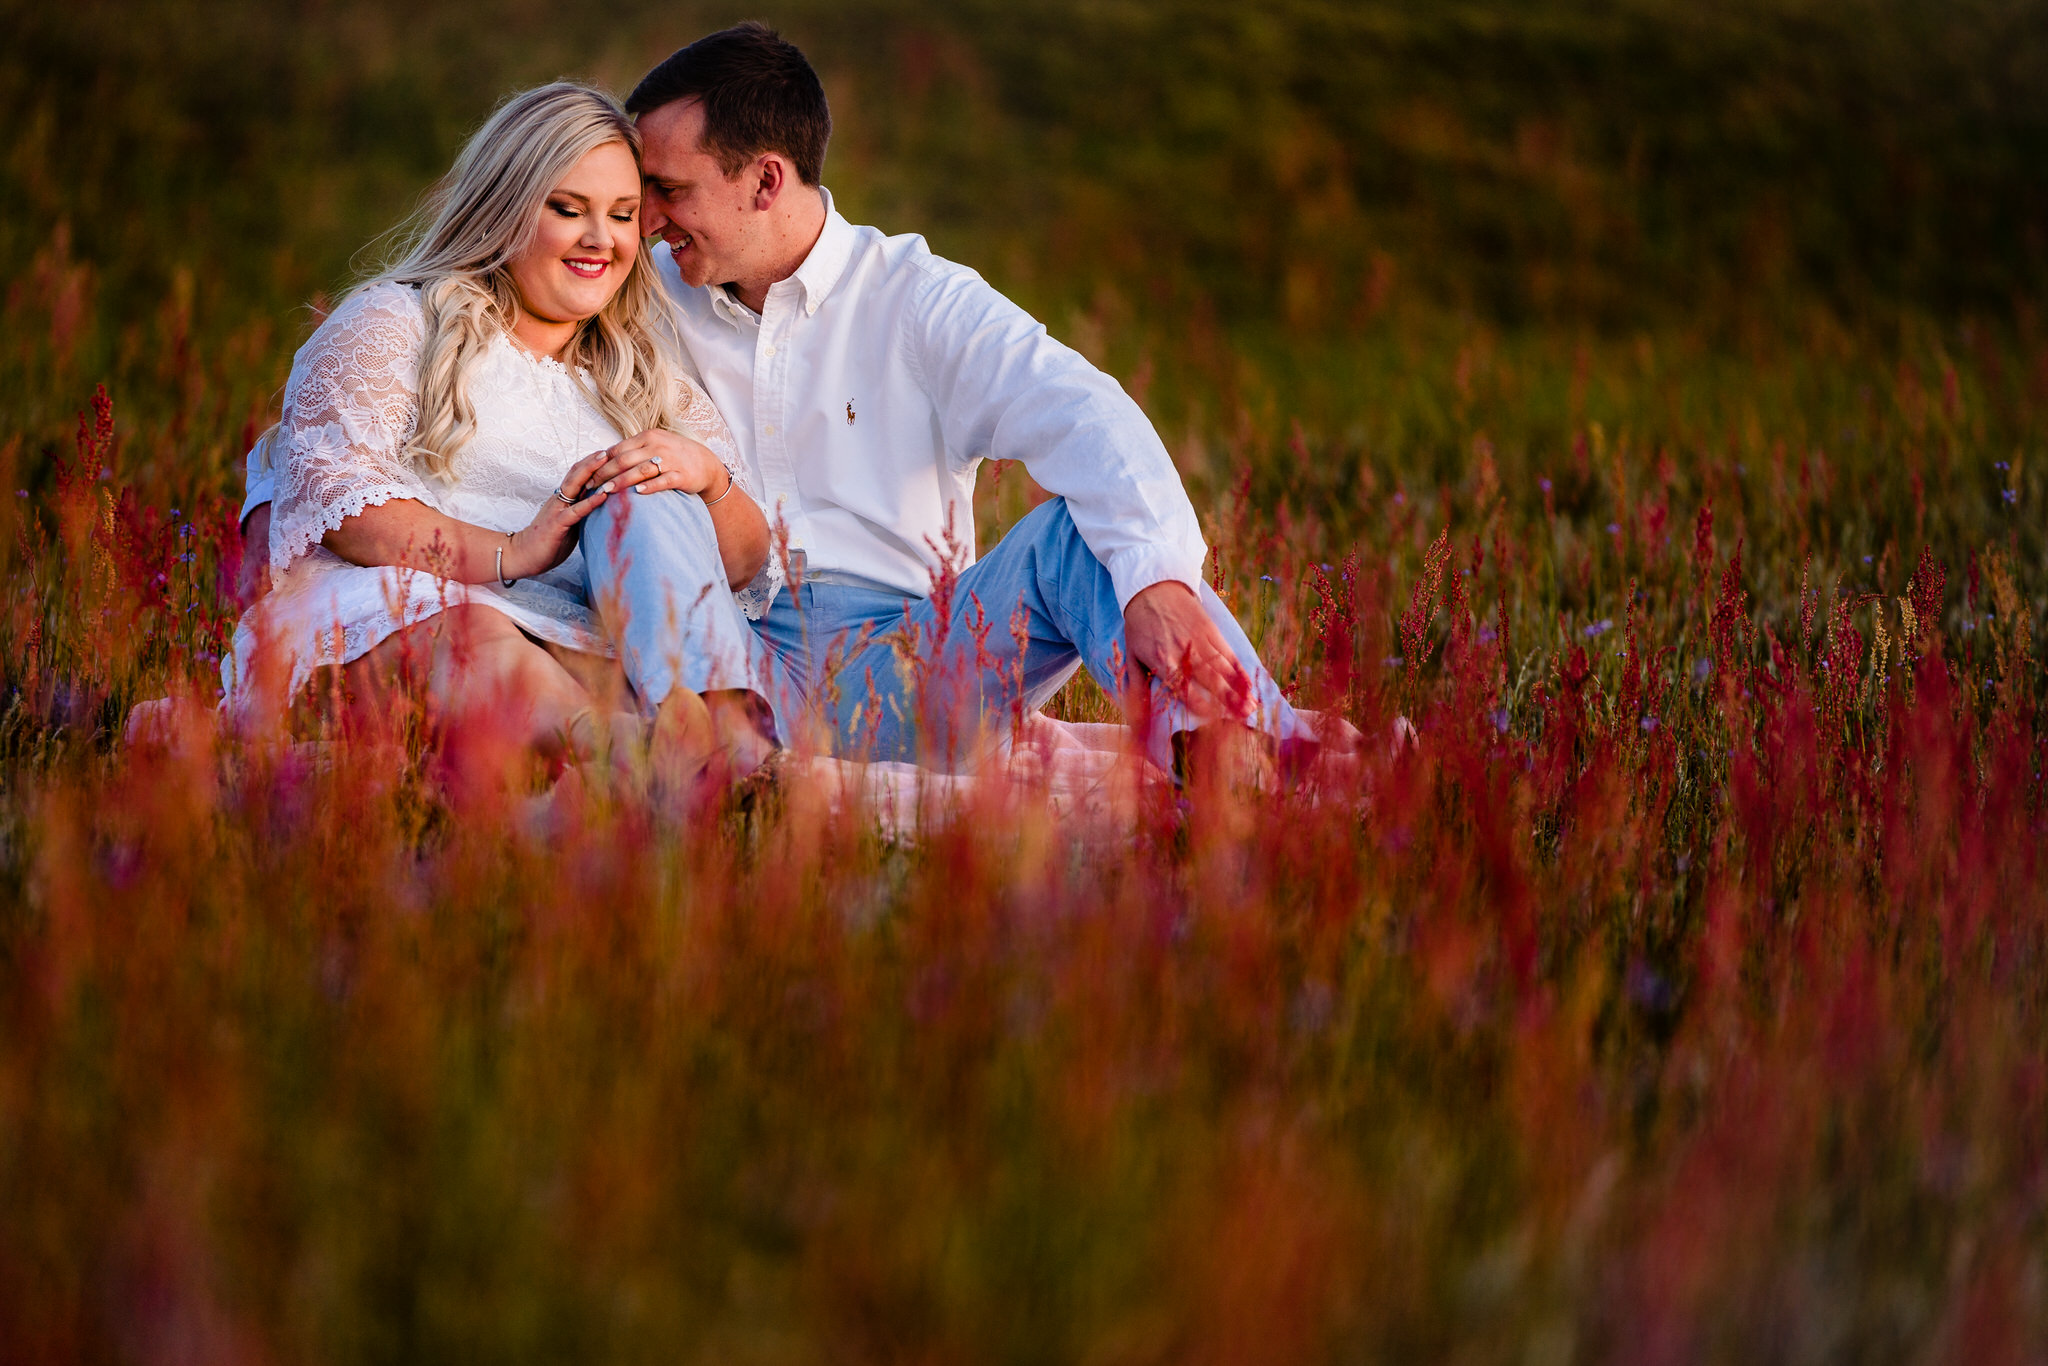 Nikki&Logan-Engagement-Cottonwood-Farm11.jpg